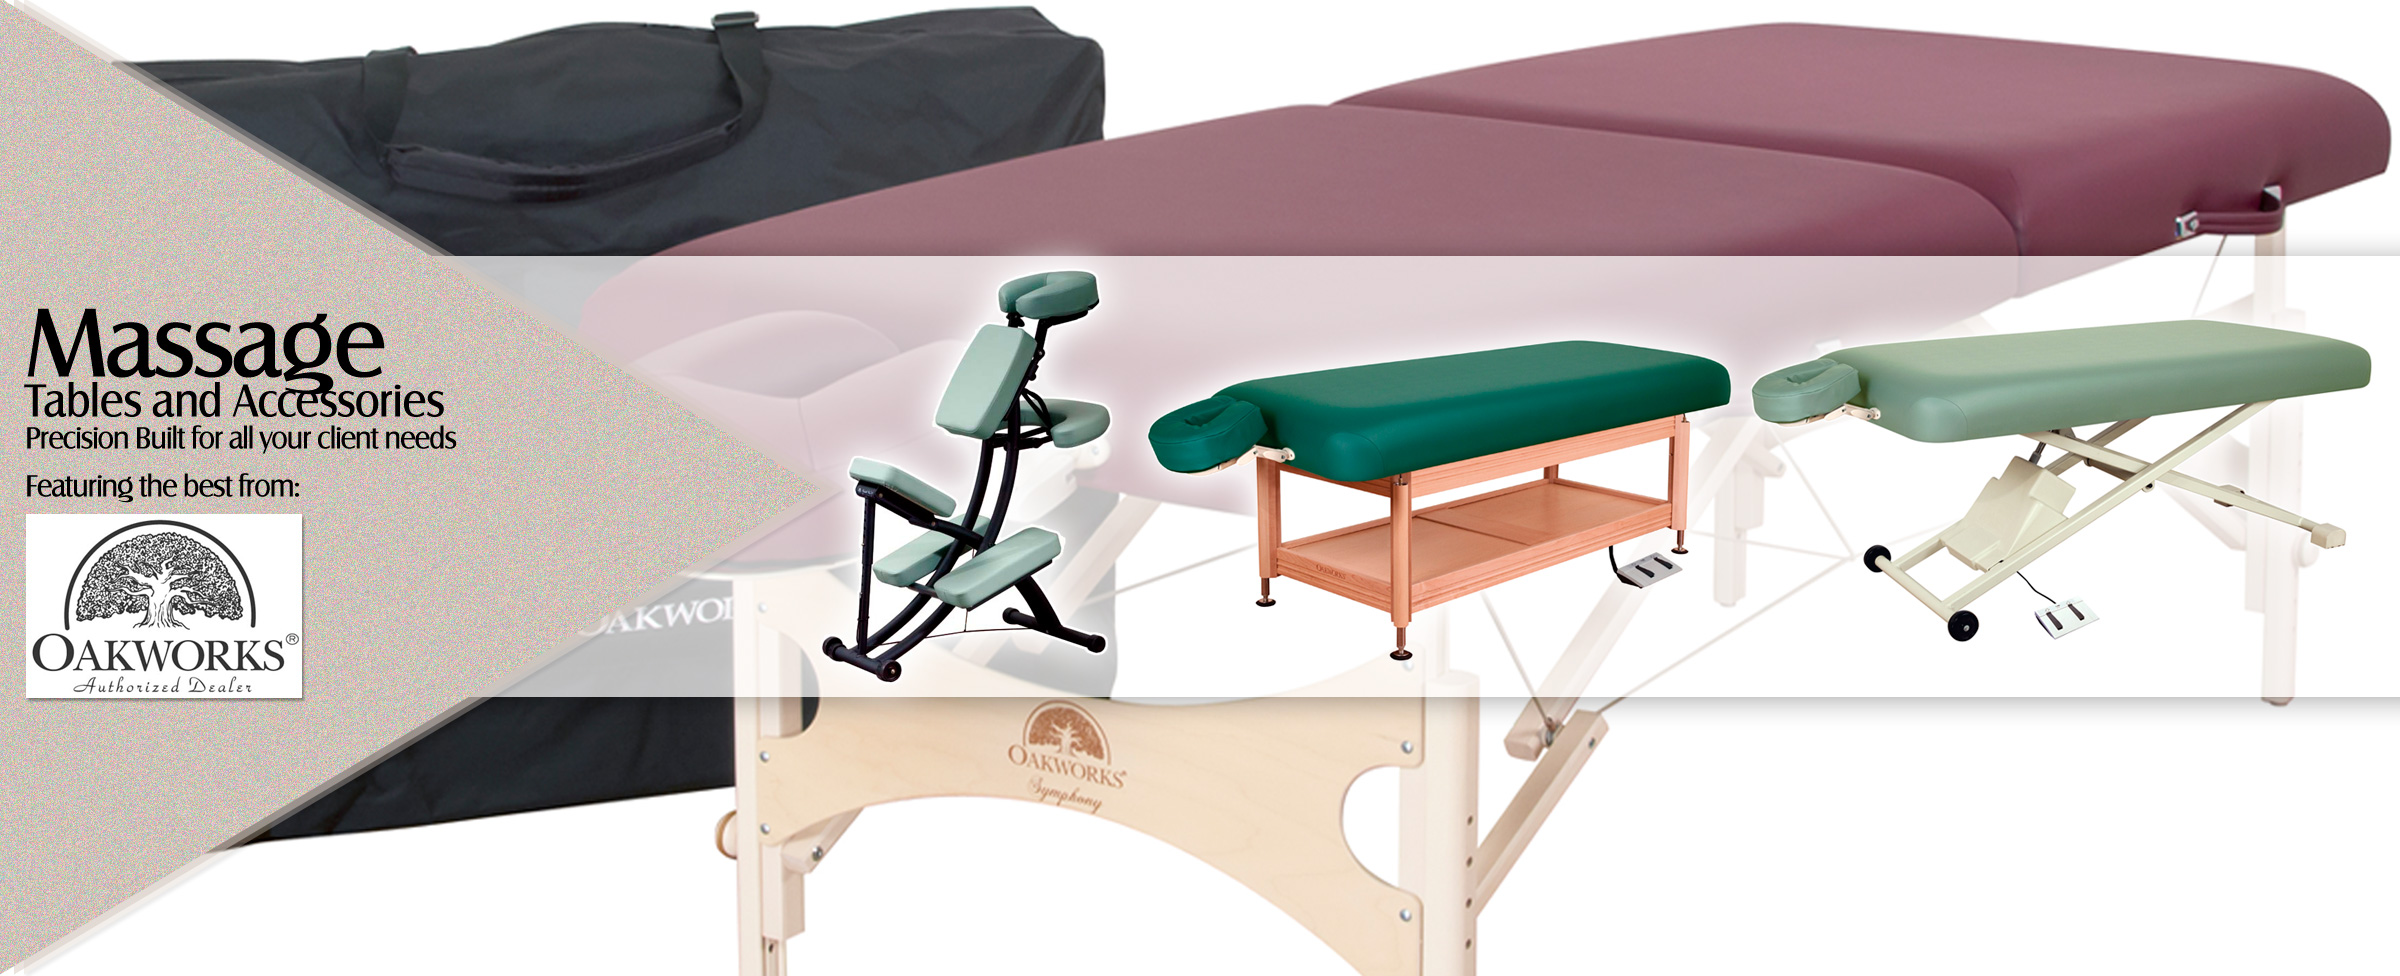 HFG International - Massage Tables and Accessories